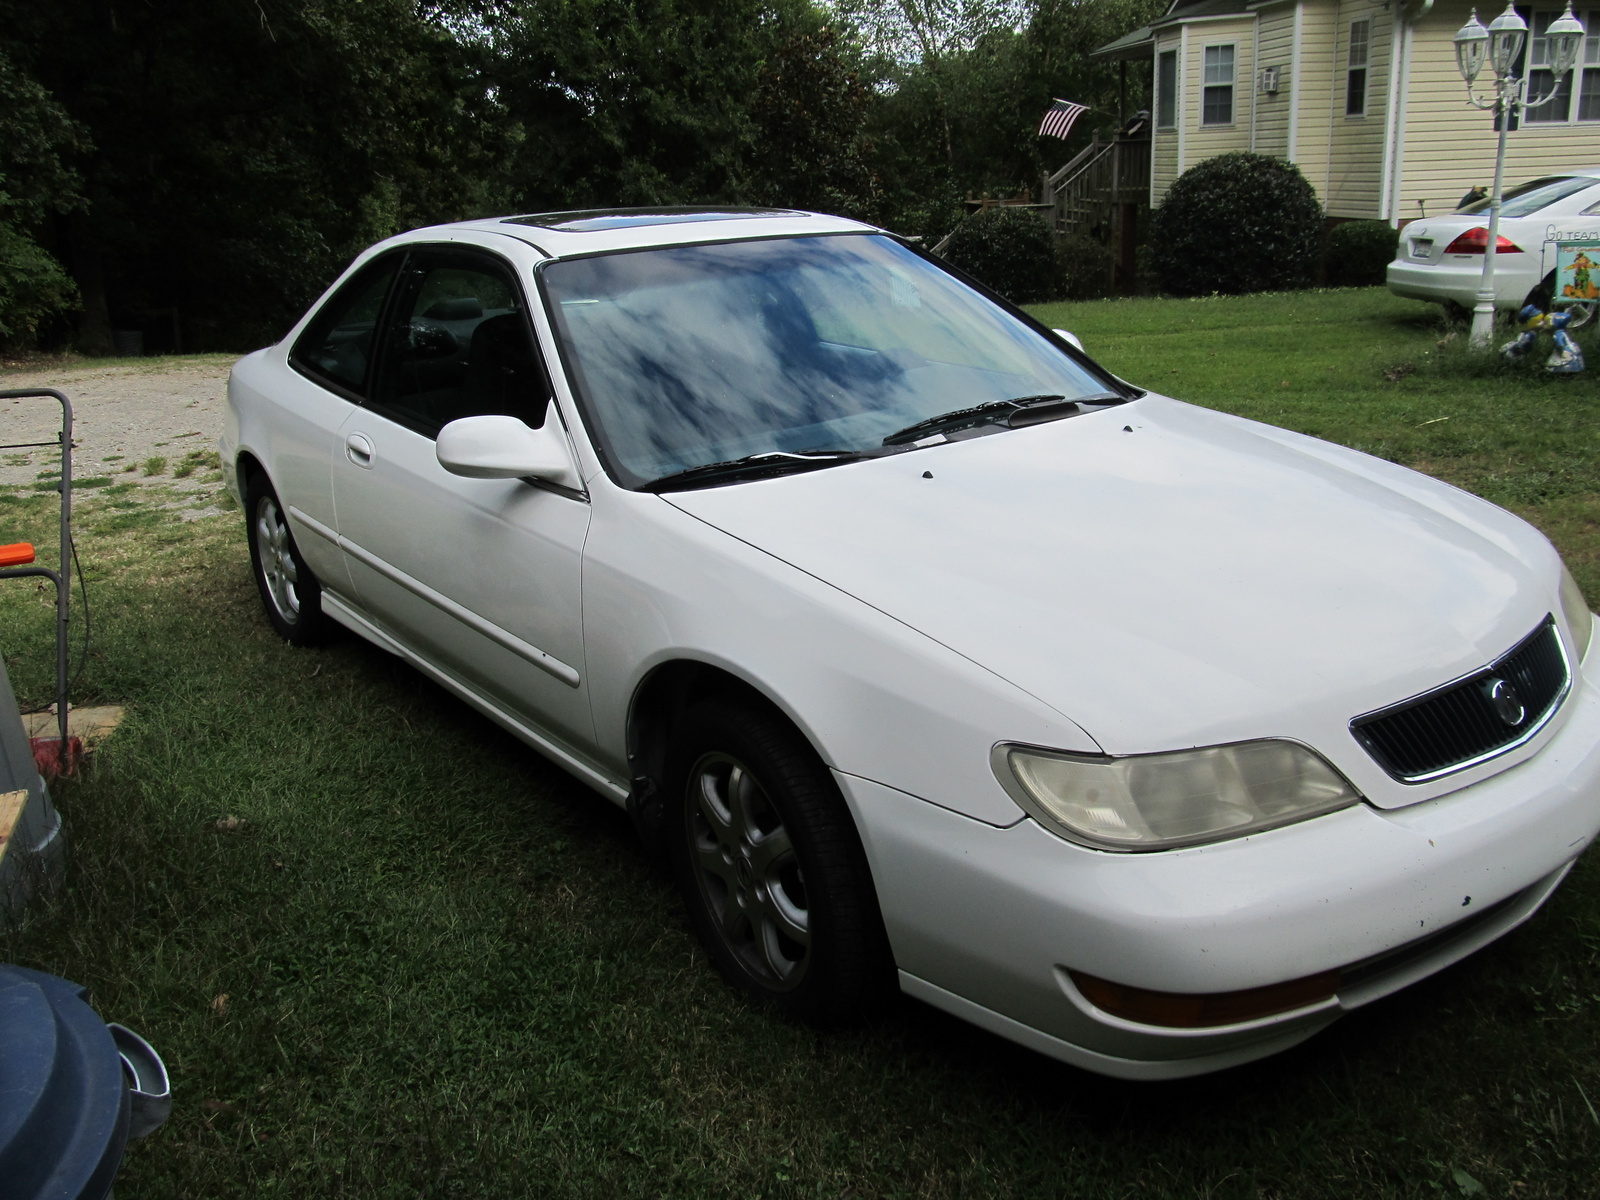 Picture of 1998 Acura CL 2 Dr 3.0 Premium Coupe, exterior